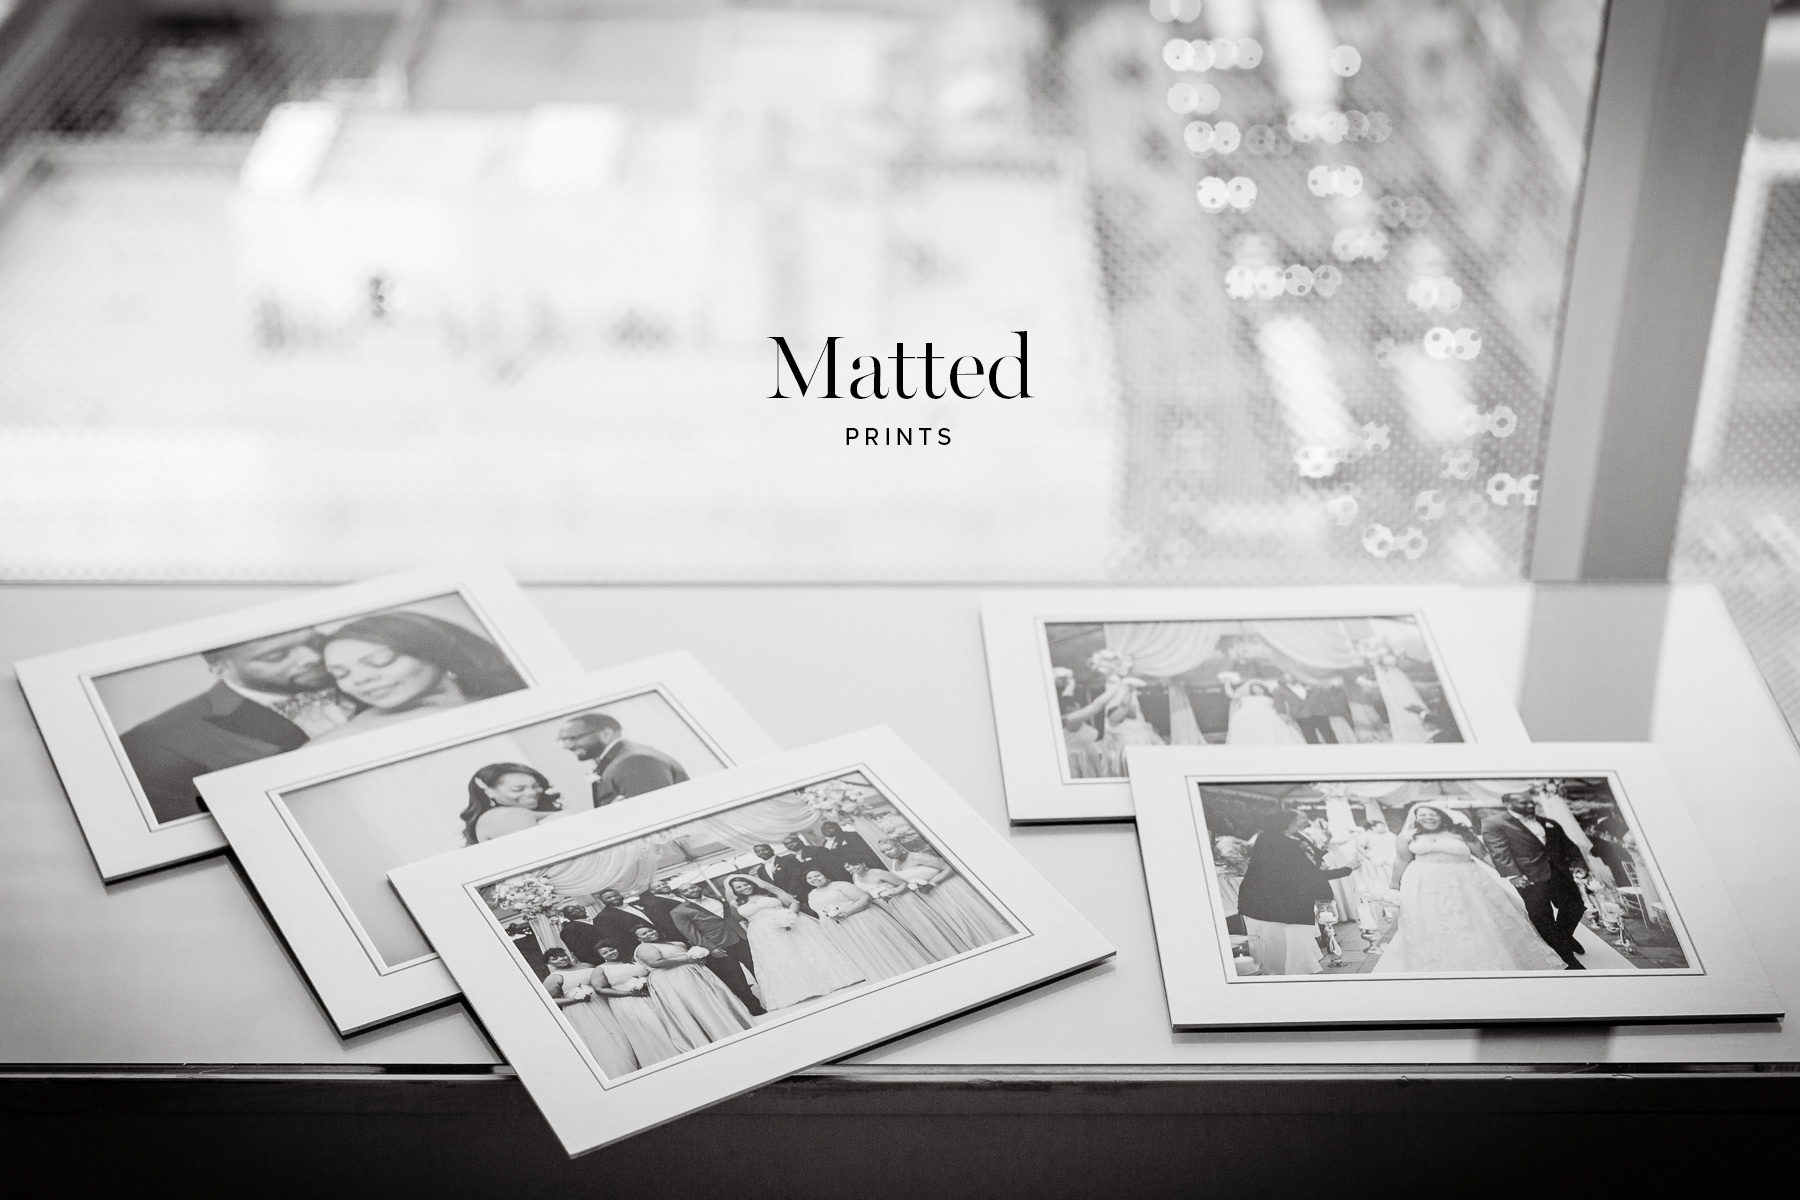 Matted prints from Petronella Photography